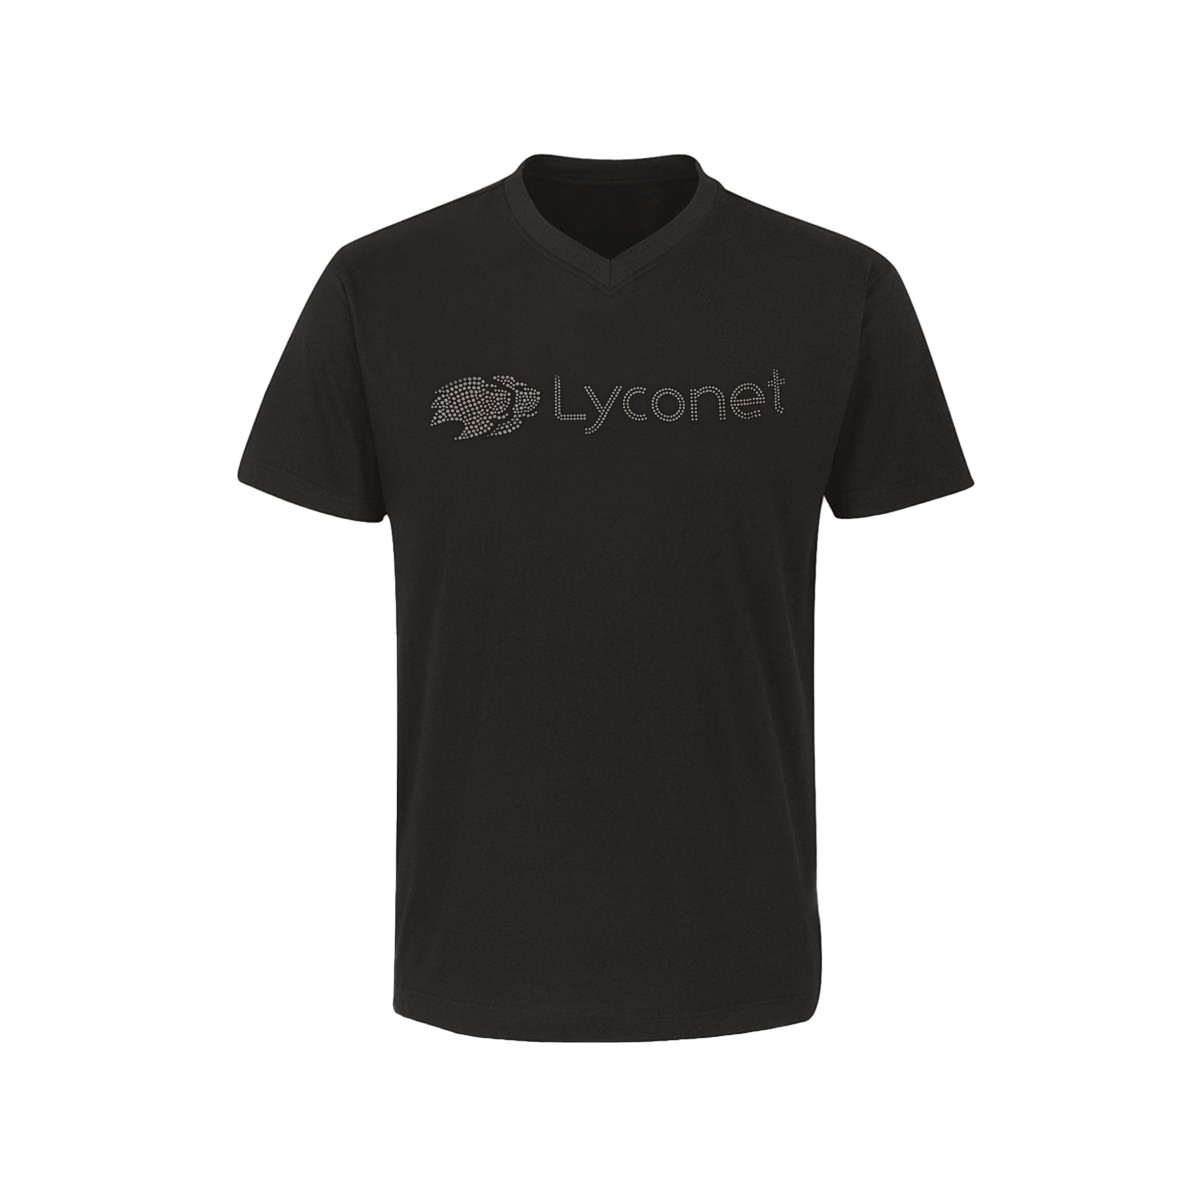 Lyconet shirt in black with clear rhinestones for Women